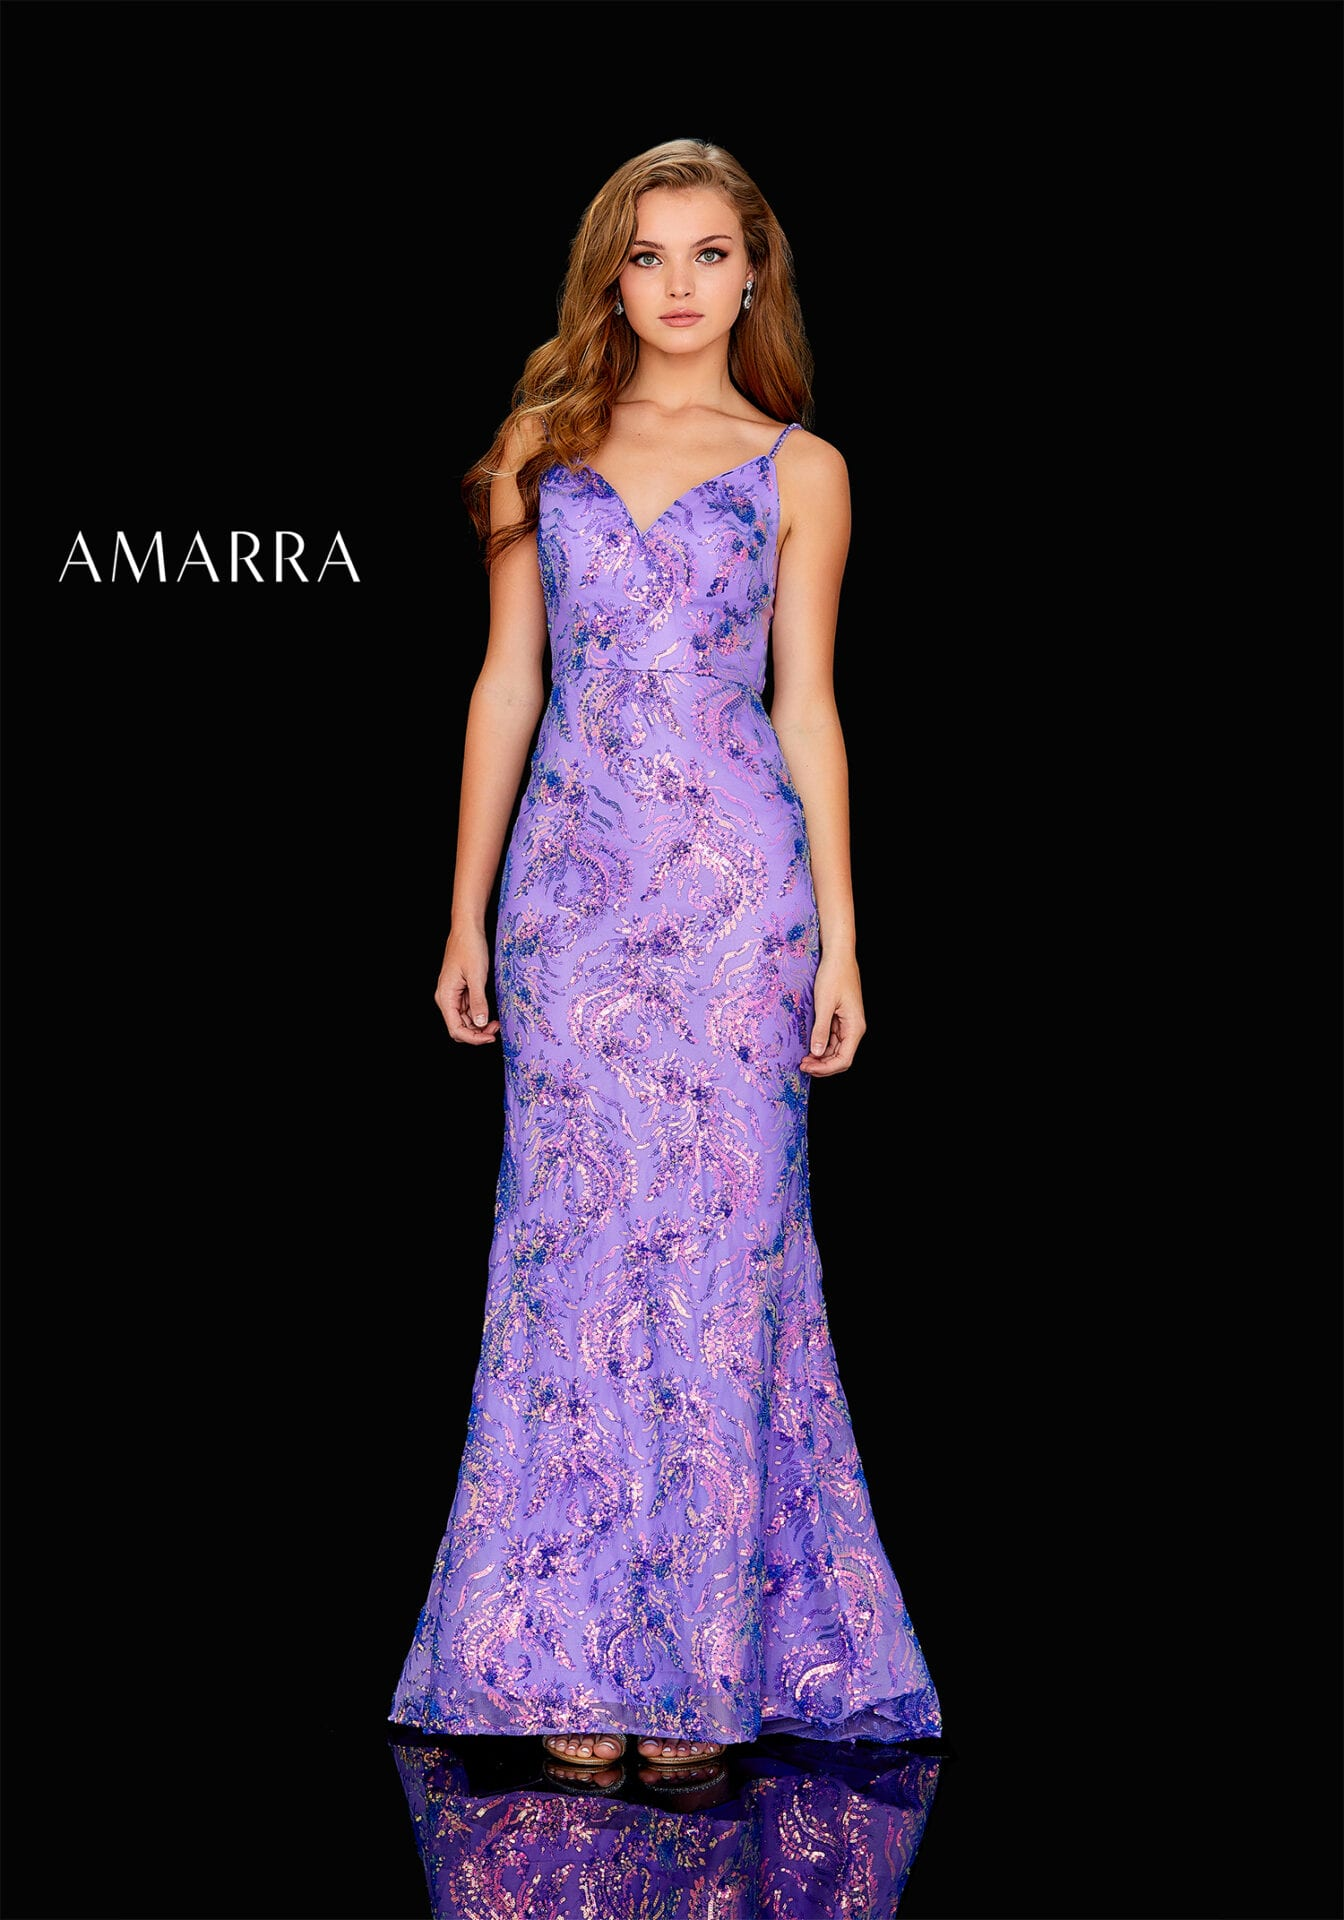 Fitted gown with a sweetheart neckline, embellished straps, and iridescent dragon sequin pattern.